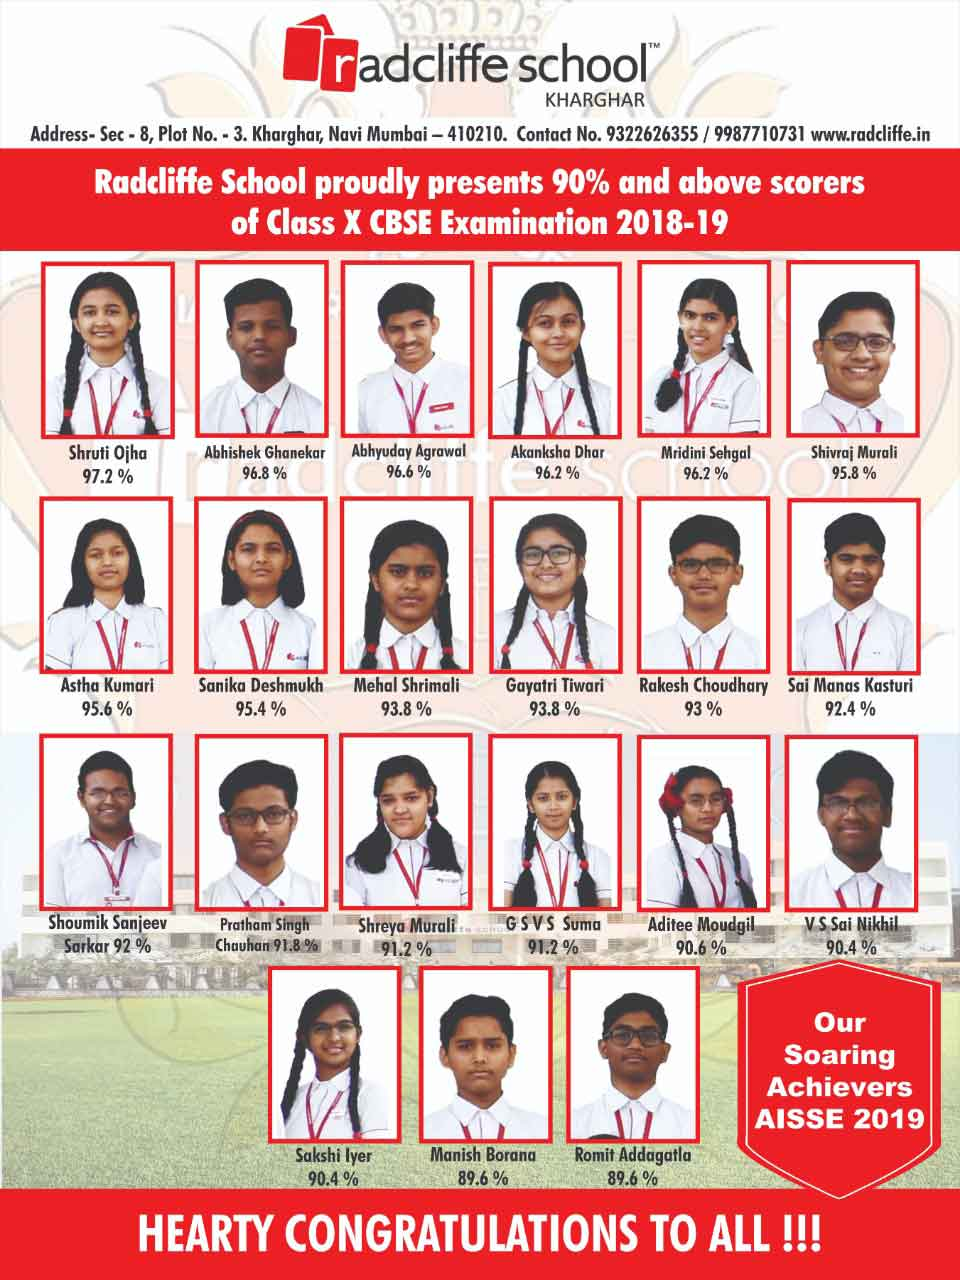 The Grade X Results - Students who scored above 90%. Congratulations to all!!